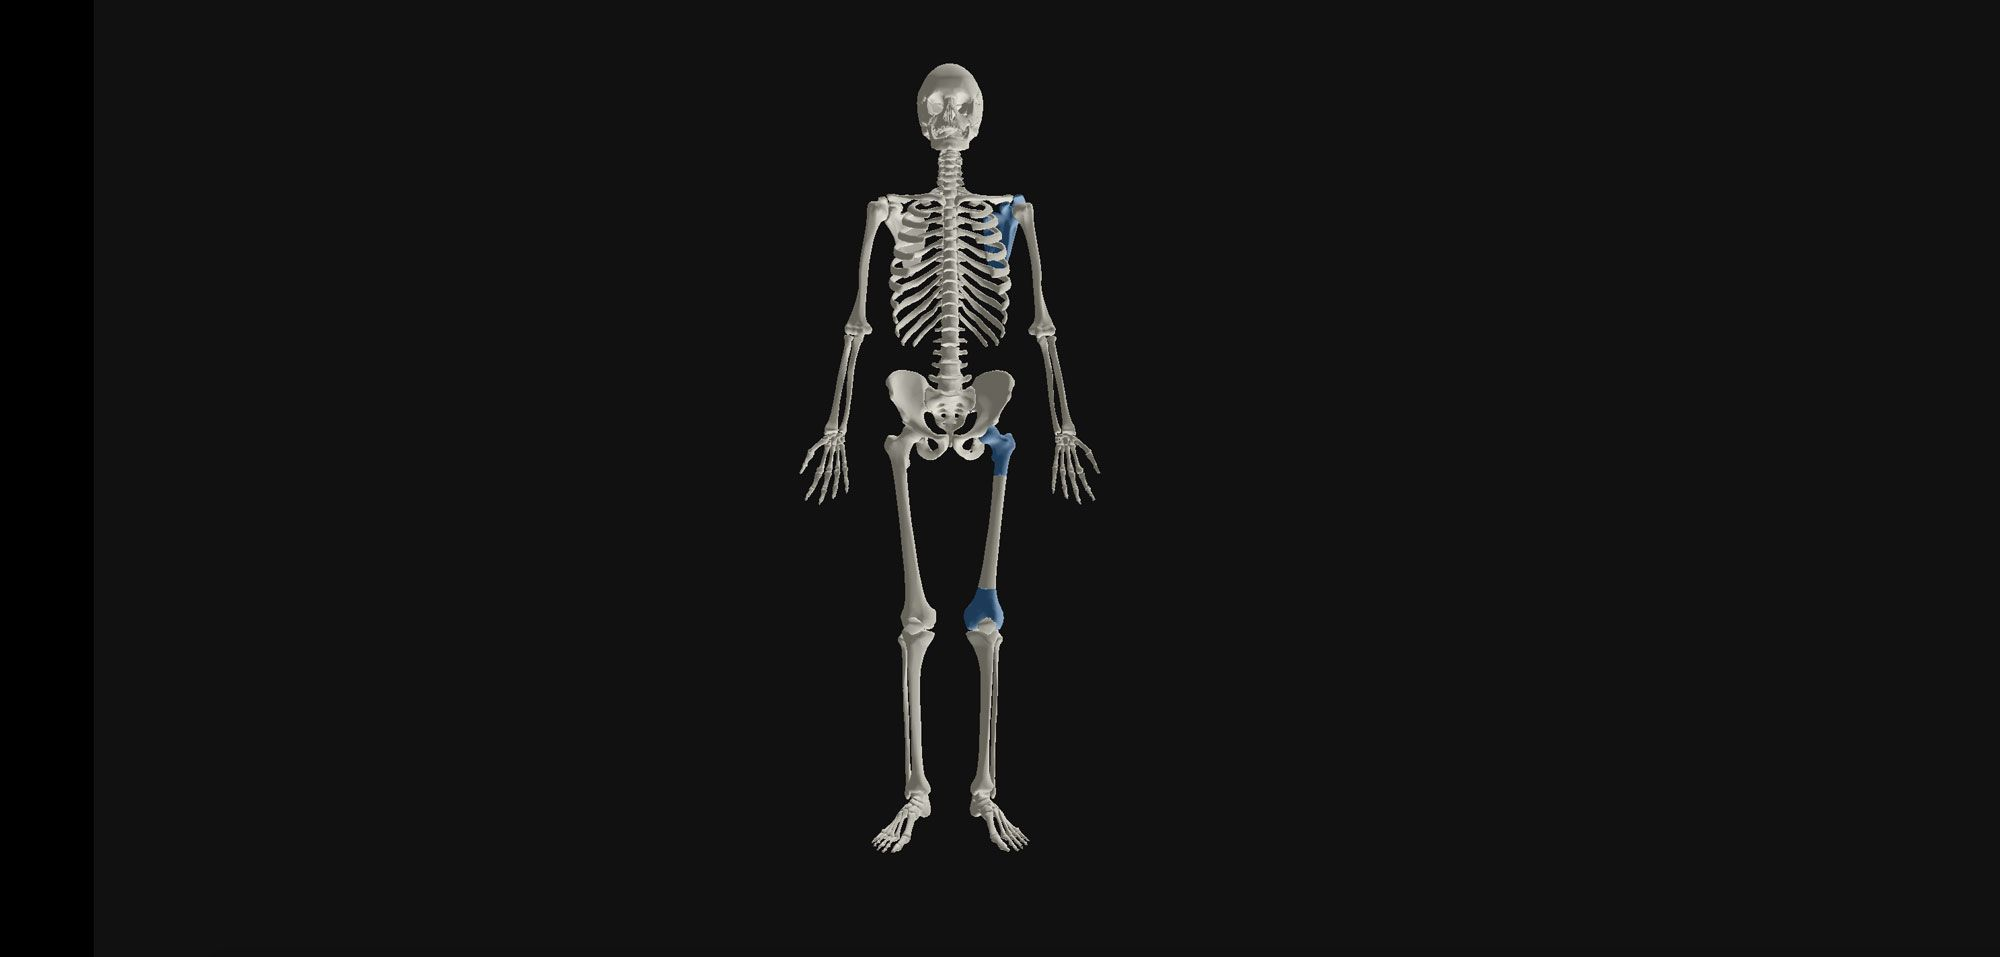 Our research focuses on the evolutionary origins of human bones and their associated modern day orthopaedic problems. We are particularly interested in the evolutionary adaptations that have resulted in the current human skeleton.